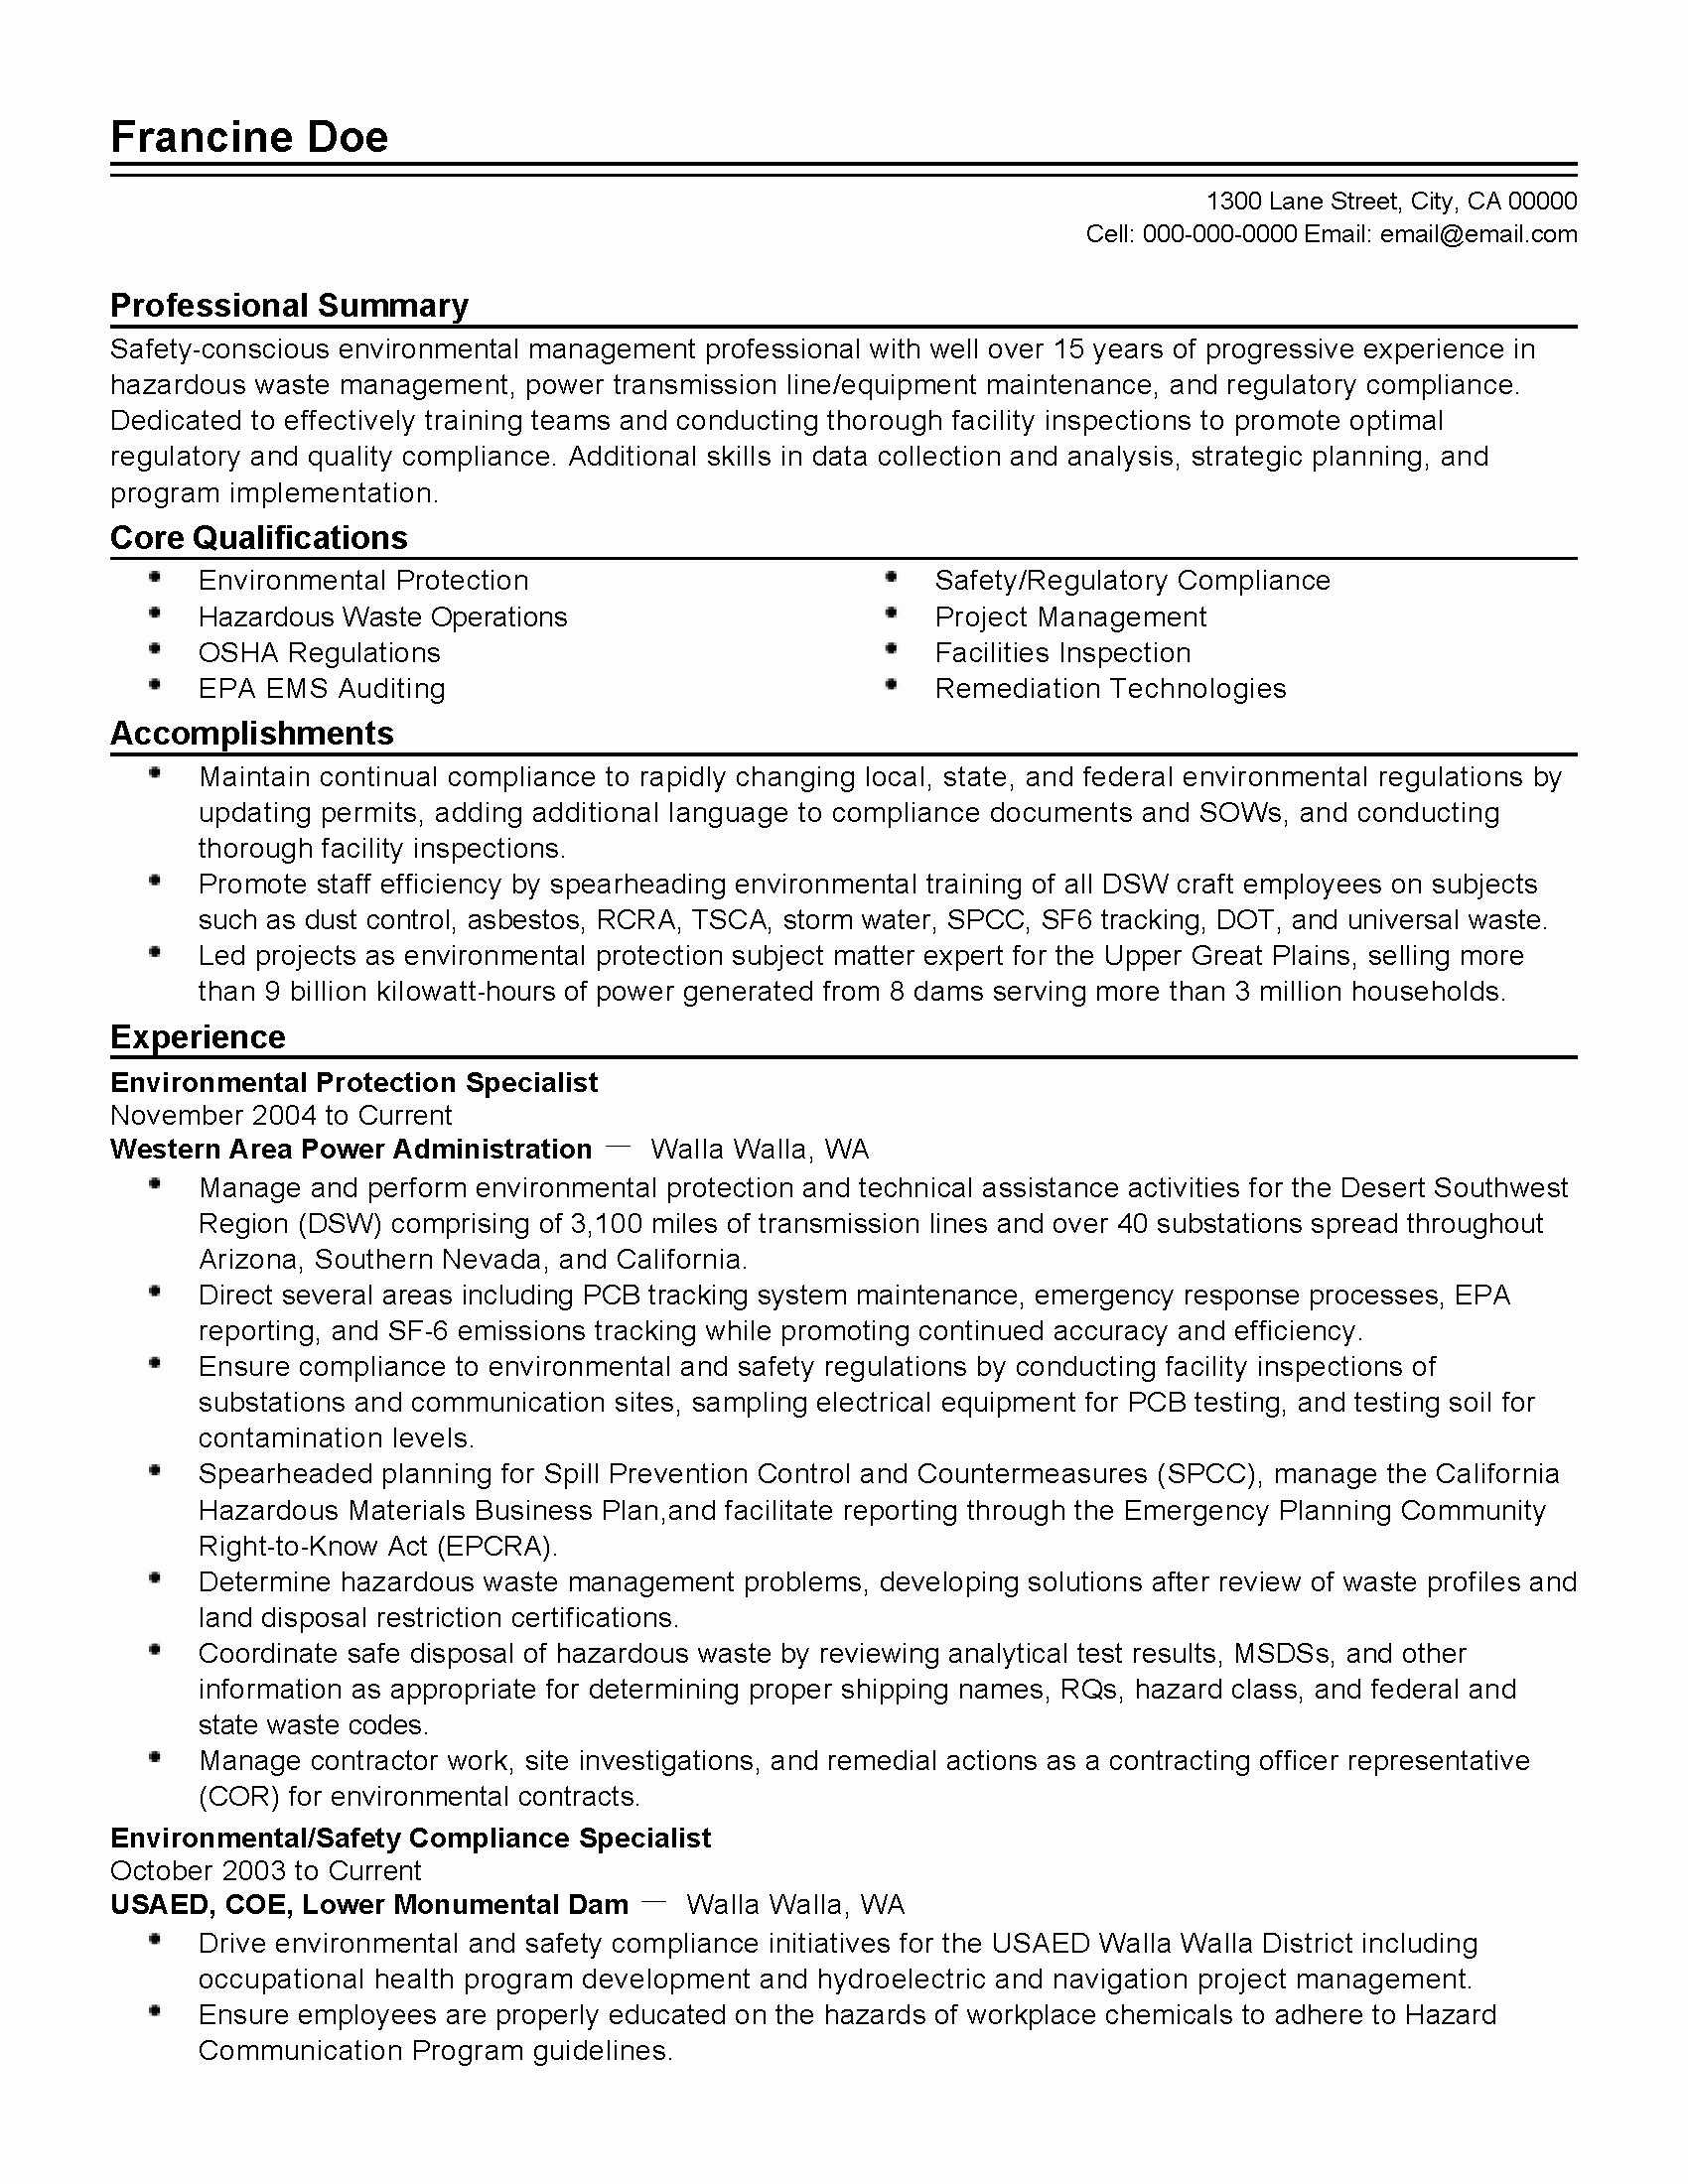 Resume for Dialysis Technician - Dialysis Technician Resume Inspirational Pct Resume